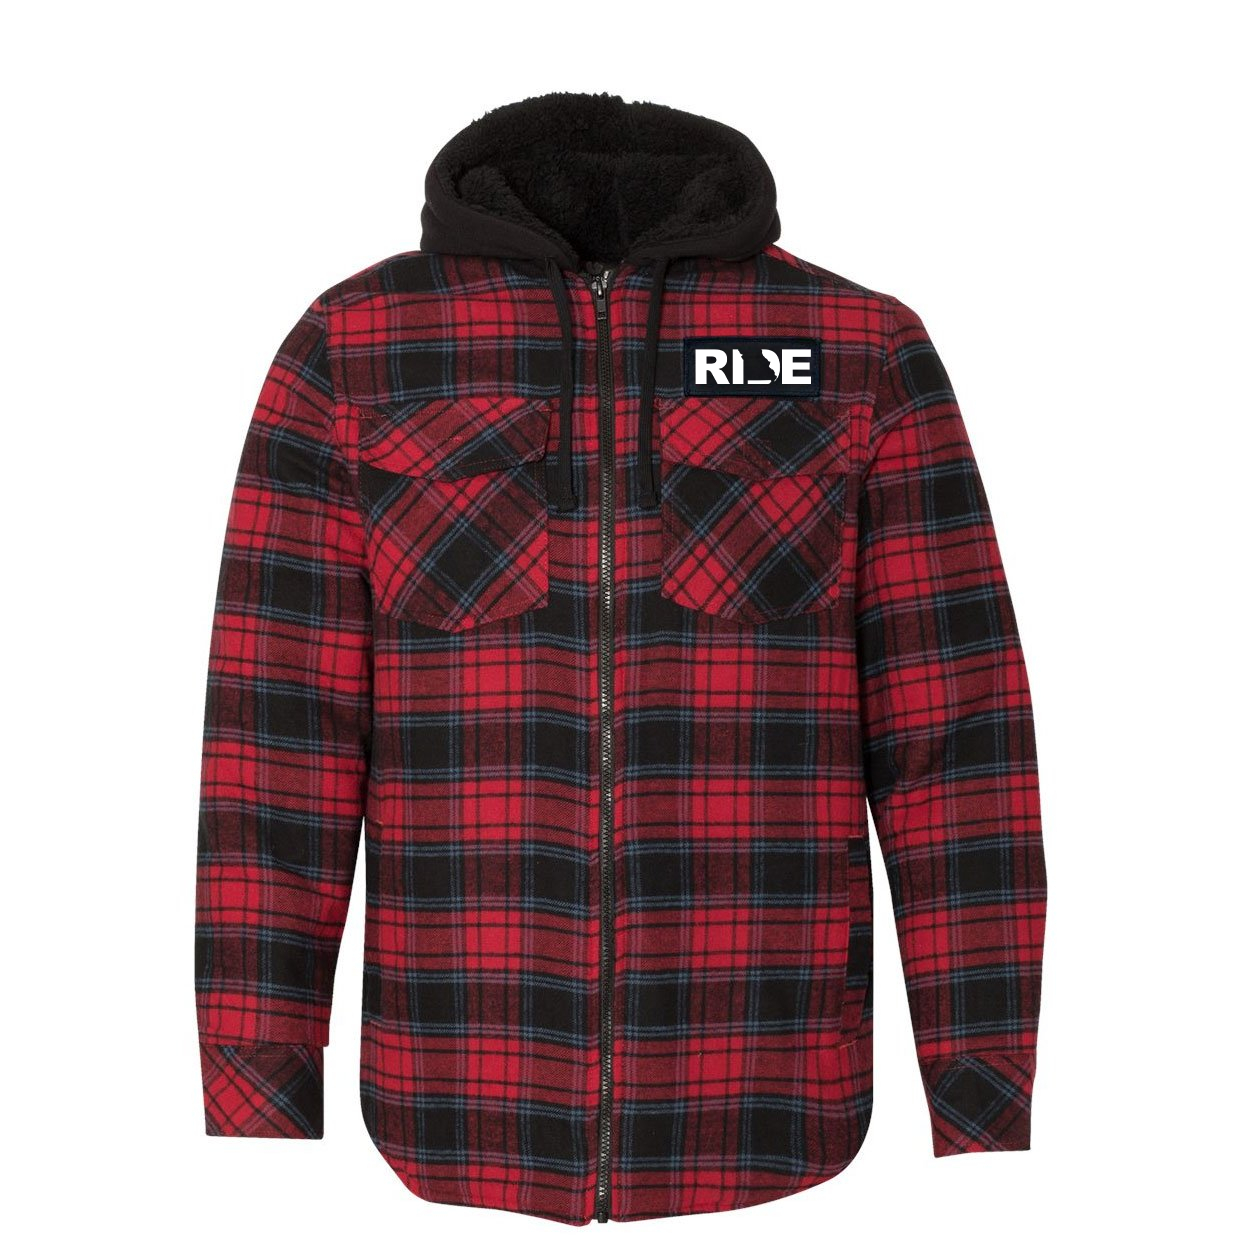 Ride Missouri Classic Unisex Full Zip Woven Patch Hooded Flannel Jacket Red/Black Buffalo (White Logo)